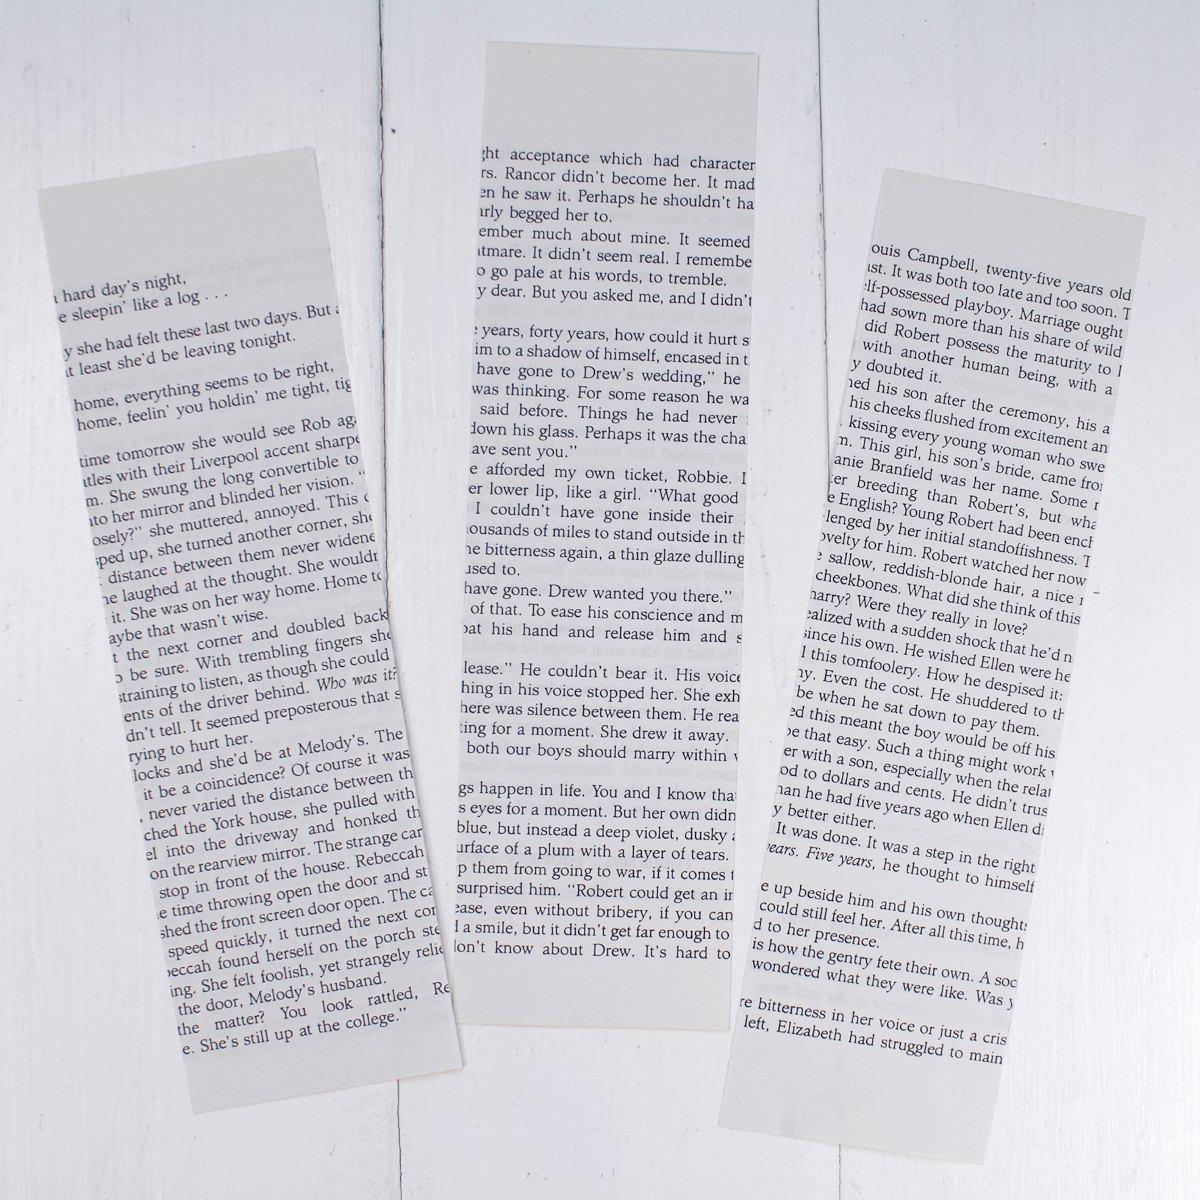 Begin by cutting up pages of the book into strips 2.5 inches wide. It's hard to cut into a good book--so find one with water damage, torn pages, already colored in or on its way to the trash.